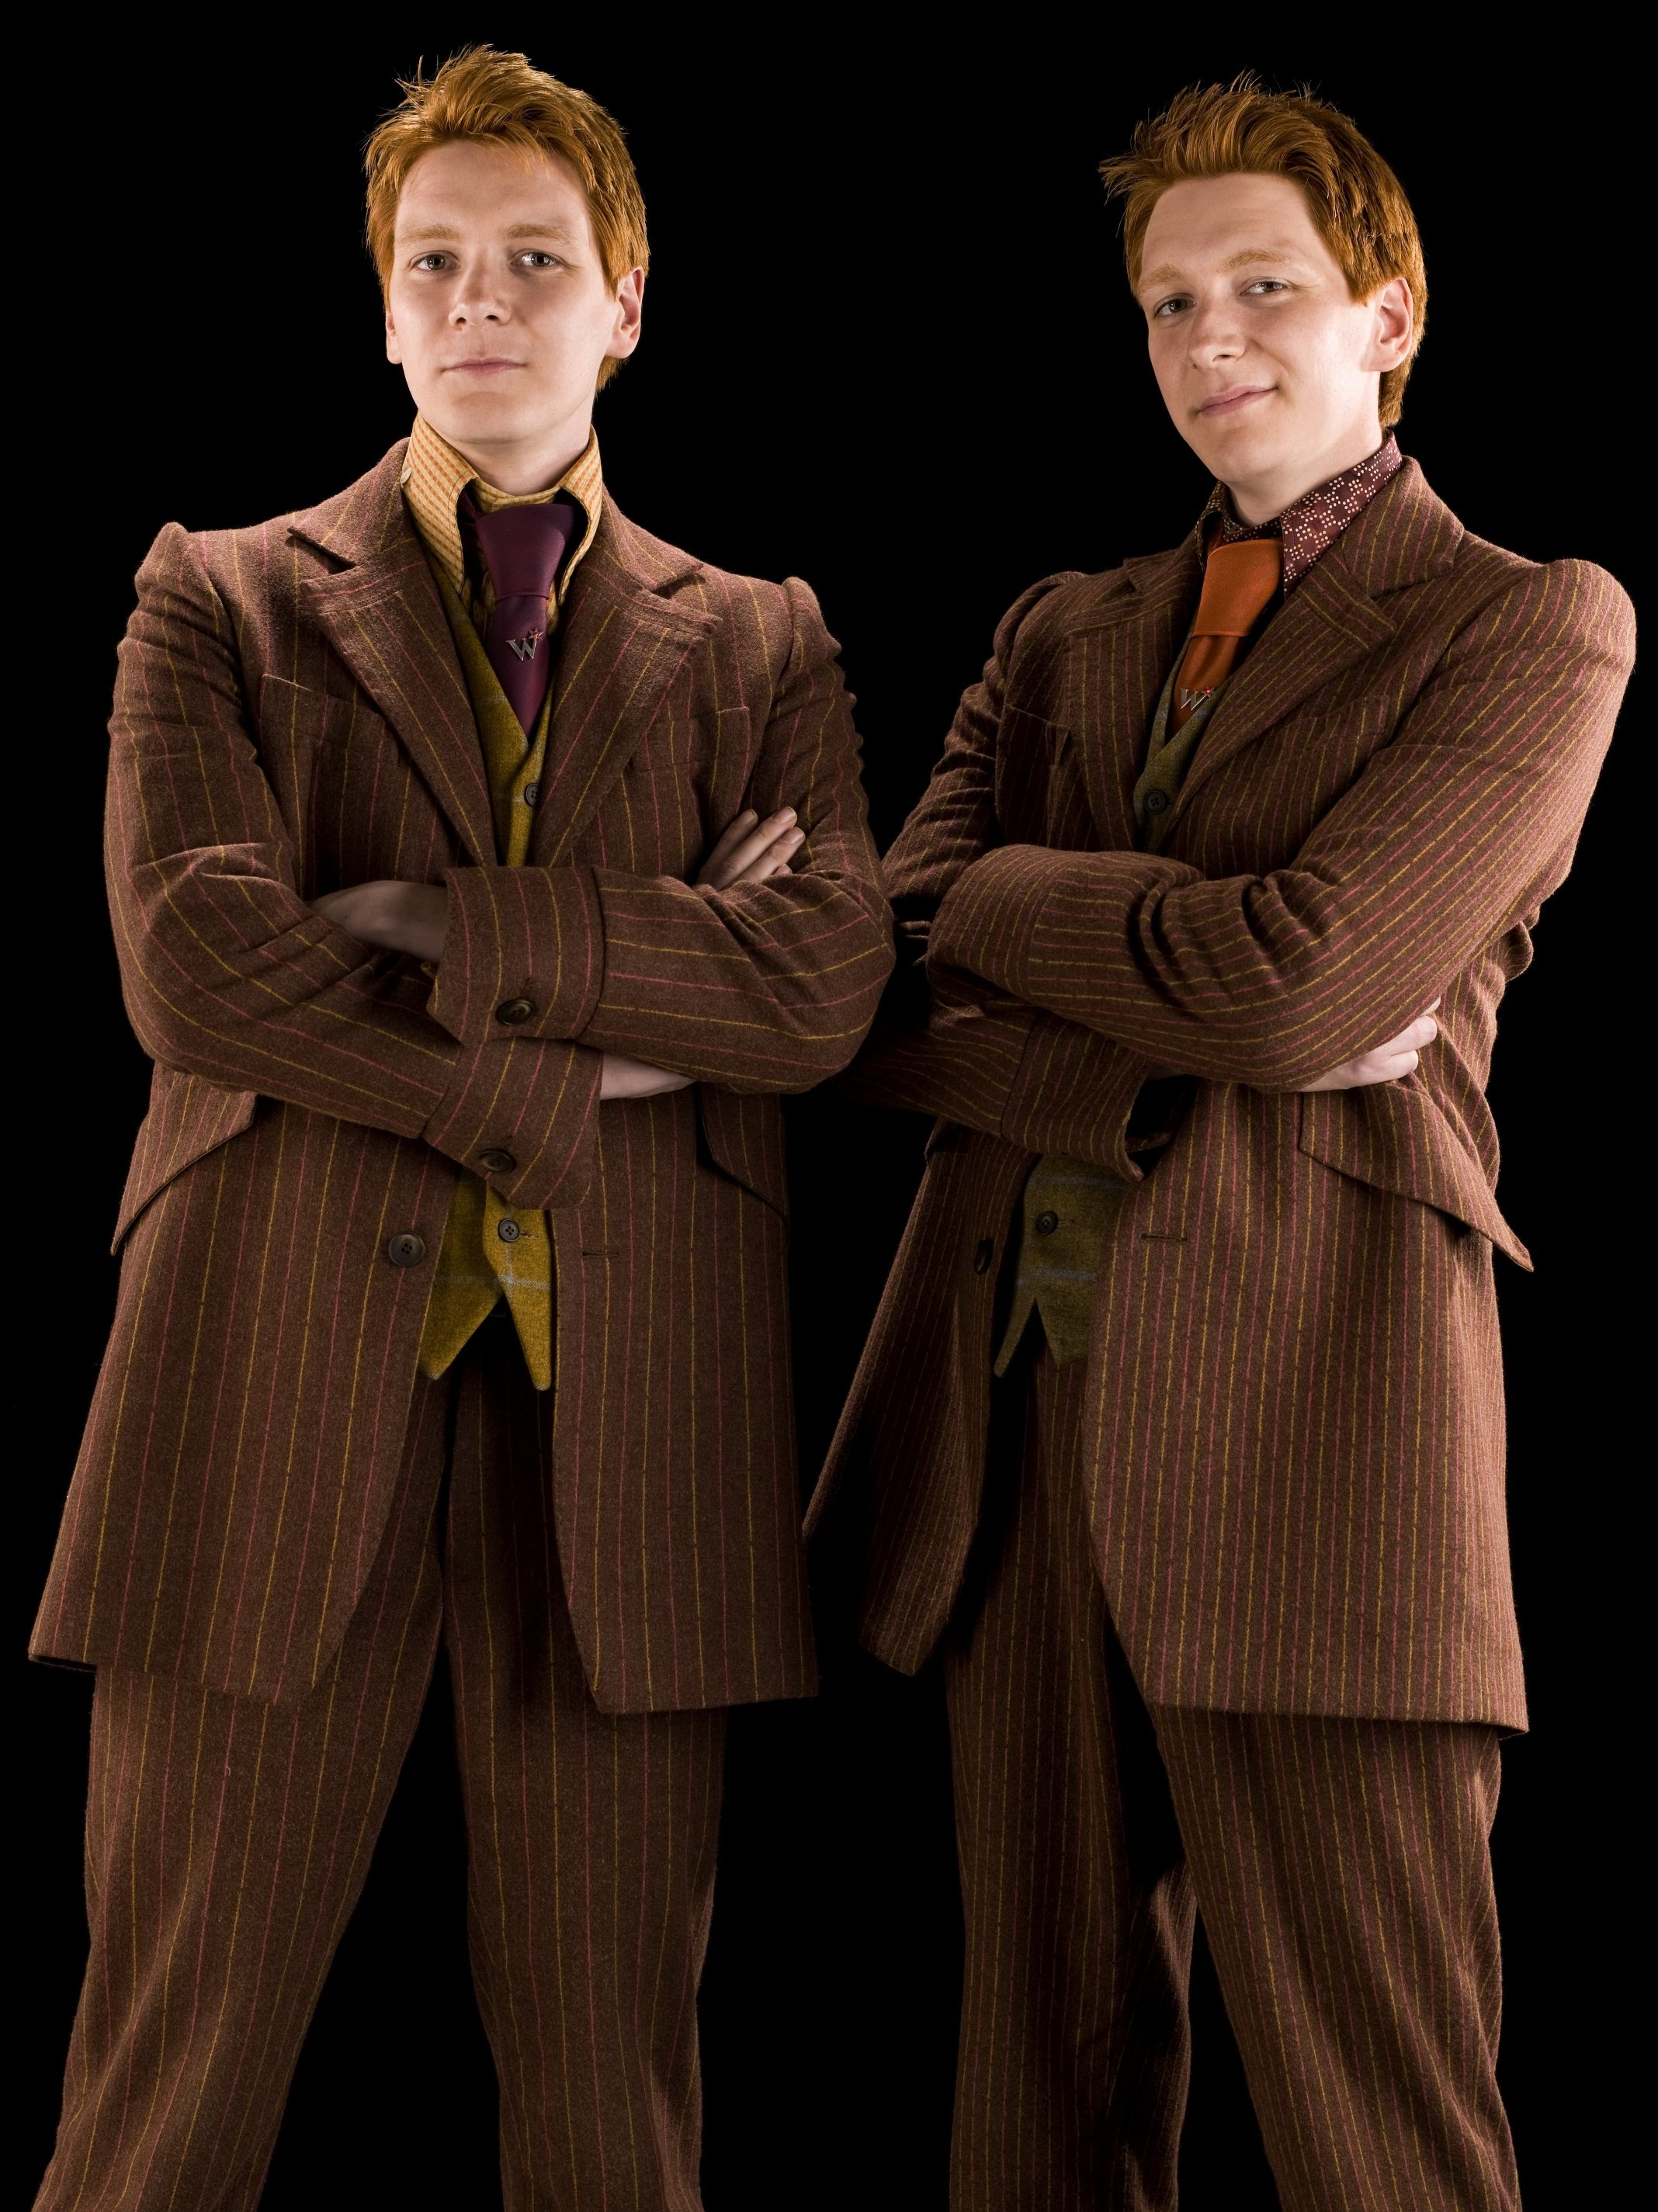 Fred and george weasley harry potter wiki